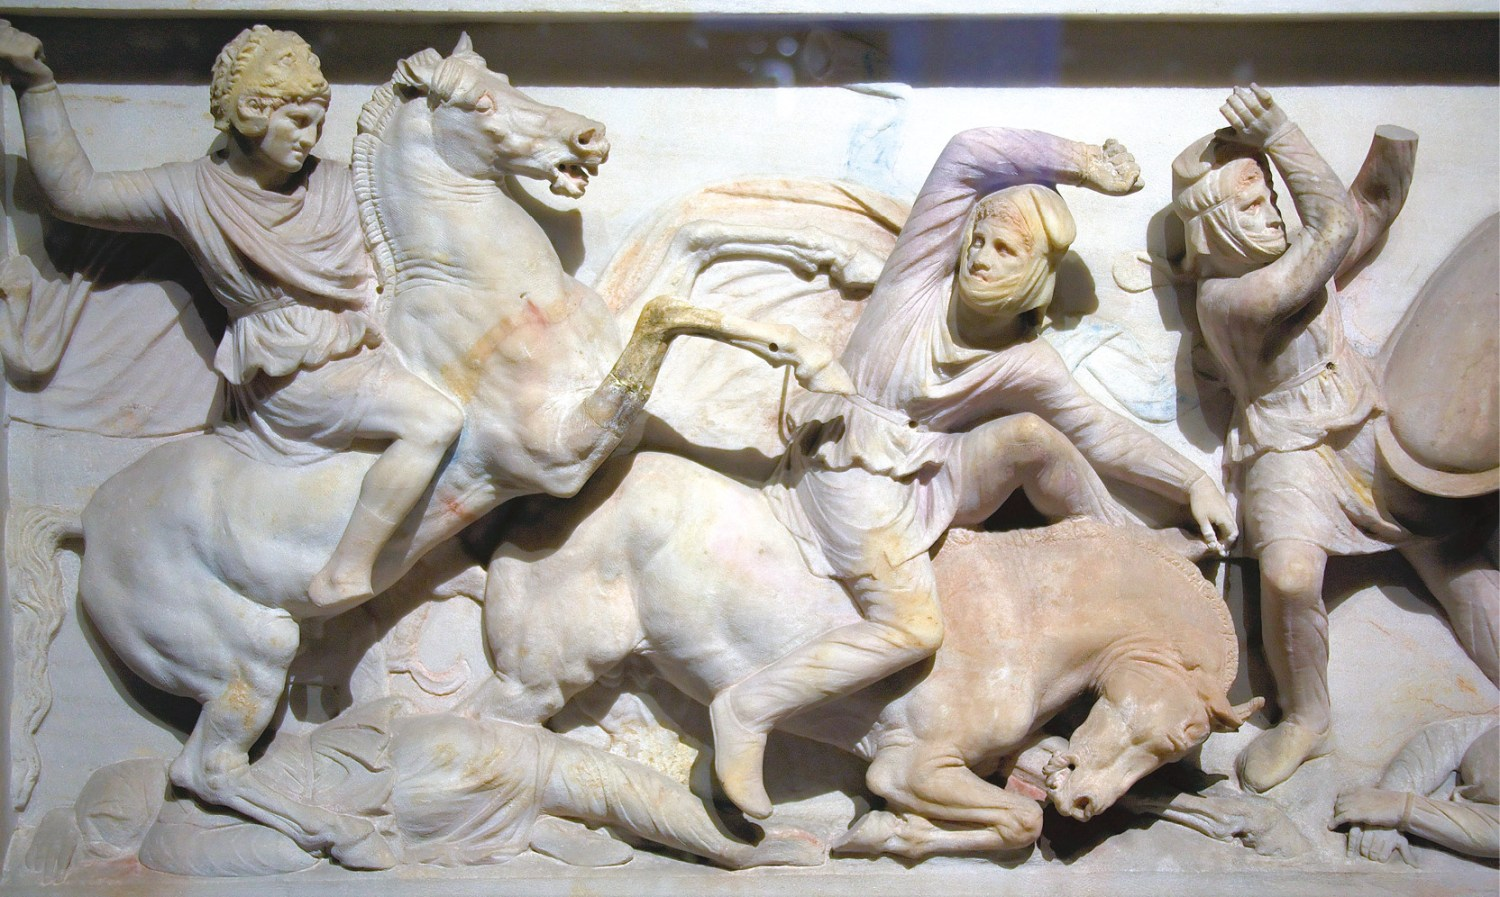 Two scenes from the Alexander Sarcophagus (on display in Istanbul's antiquities museum). Alexander appears in the guise of a Homeric hero, wearing the lion skin of Heracles, in the thick of the fighting [LEFT]. The colourised reconstruction closer to the probable original appearance underlines the dichotomy between West and East that was fundamental to the Hellenic world-view [BELOW LEFT].